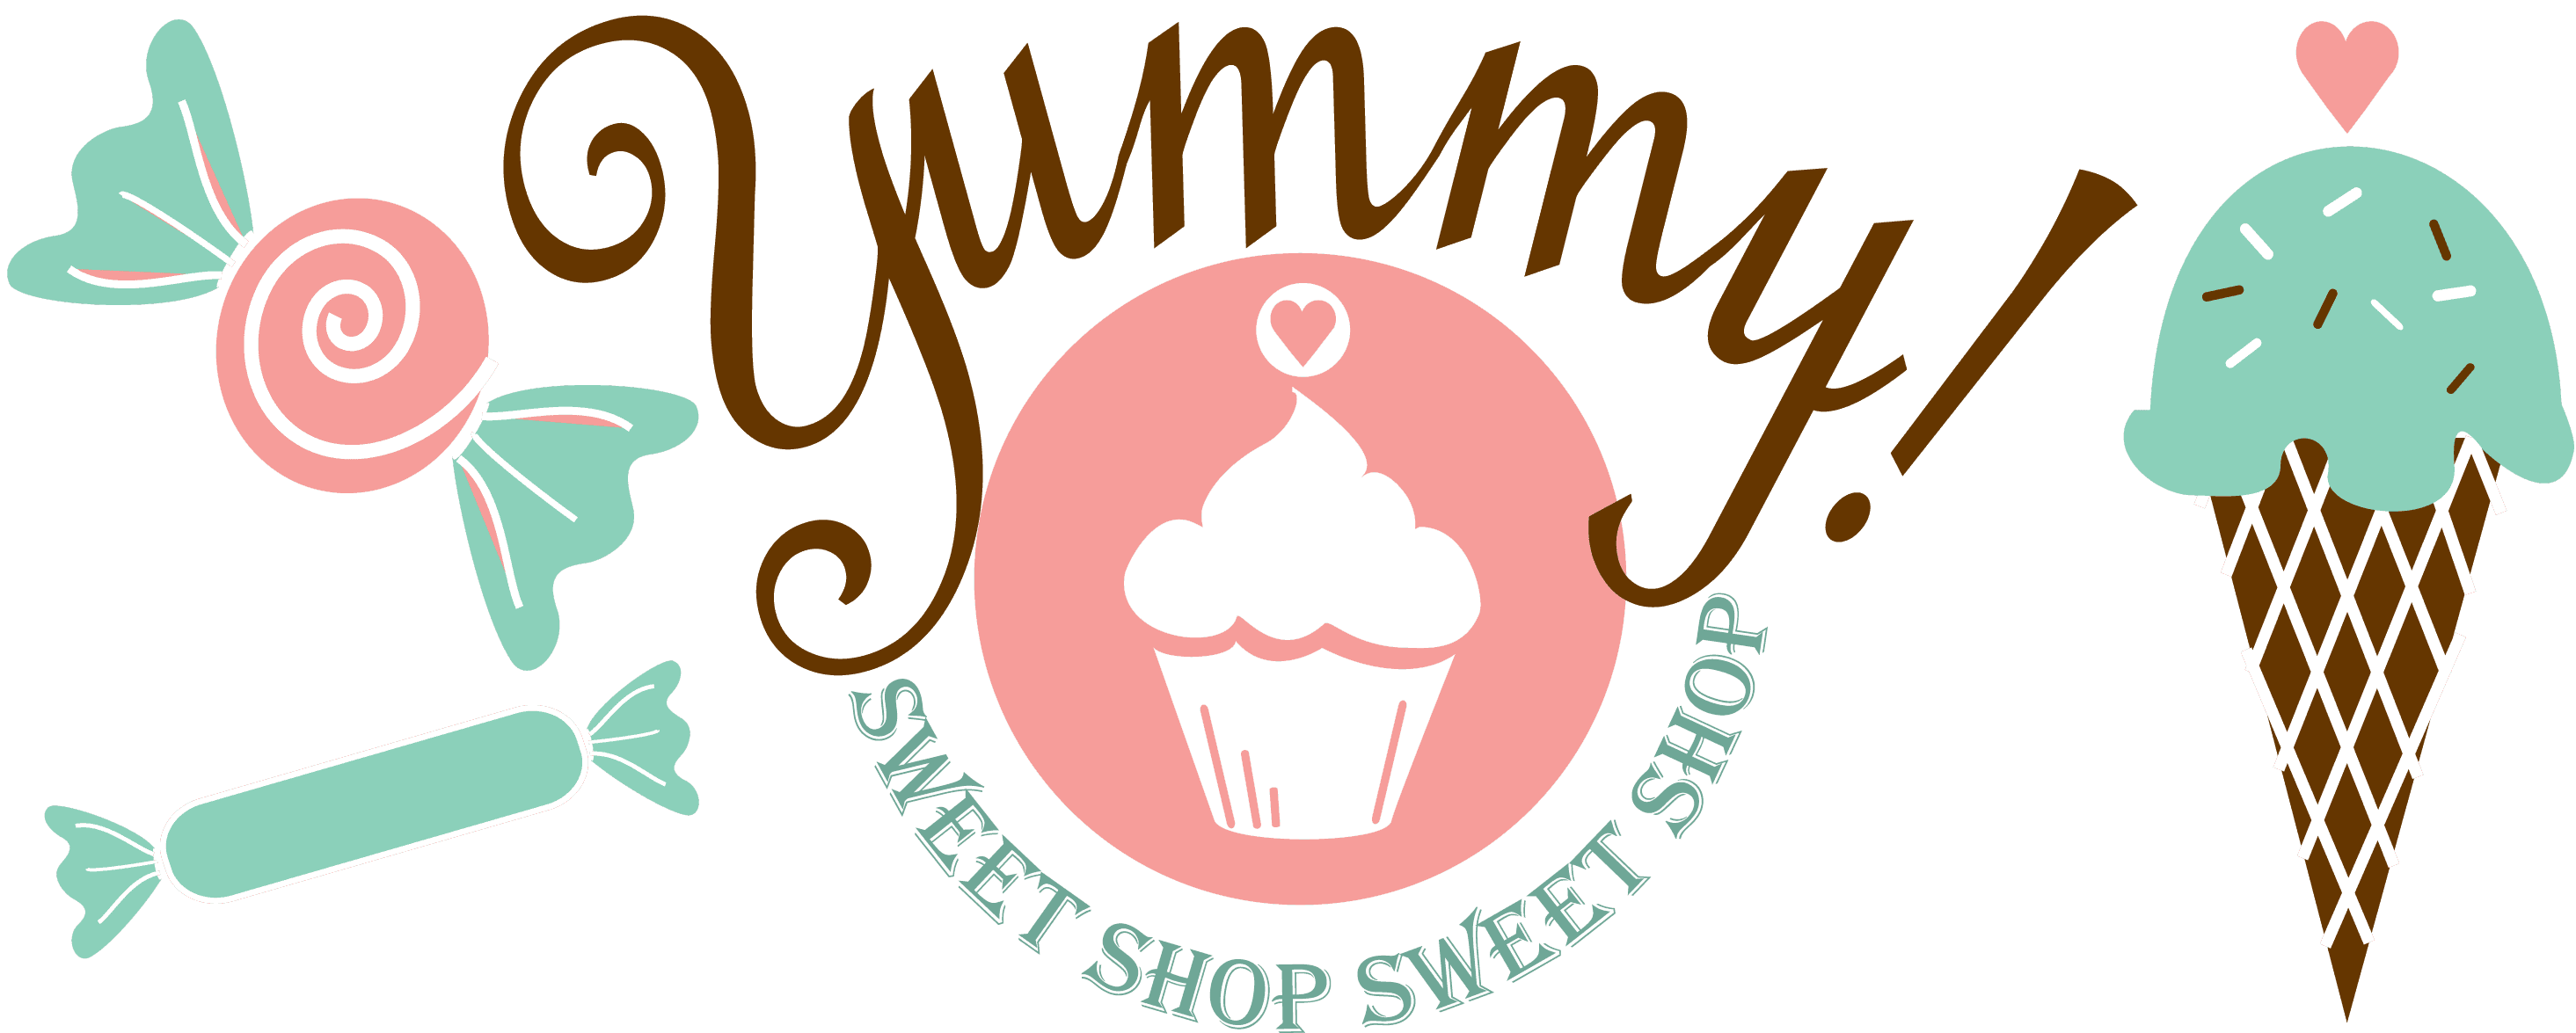 Yummy Sweet Shop logo